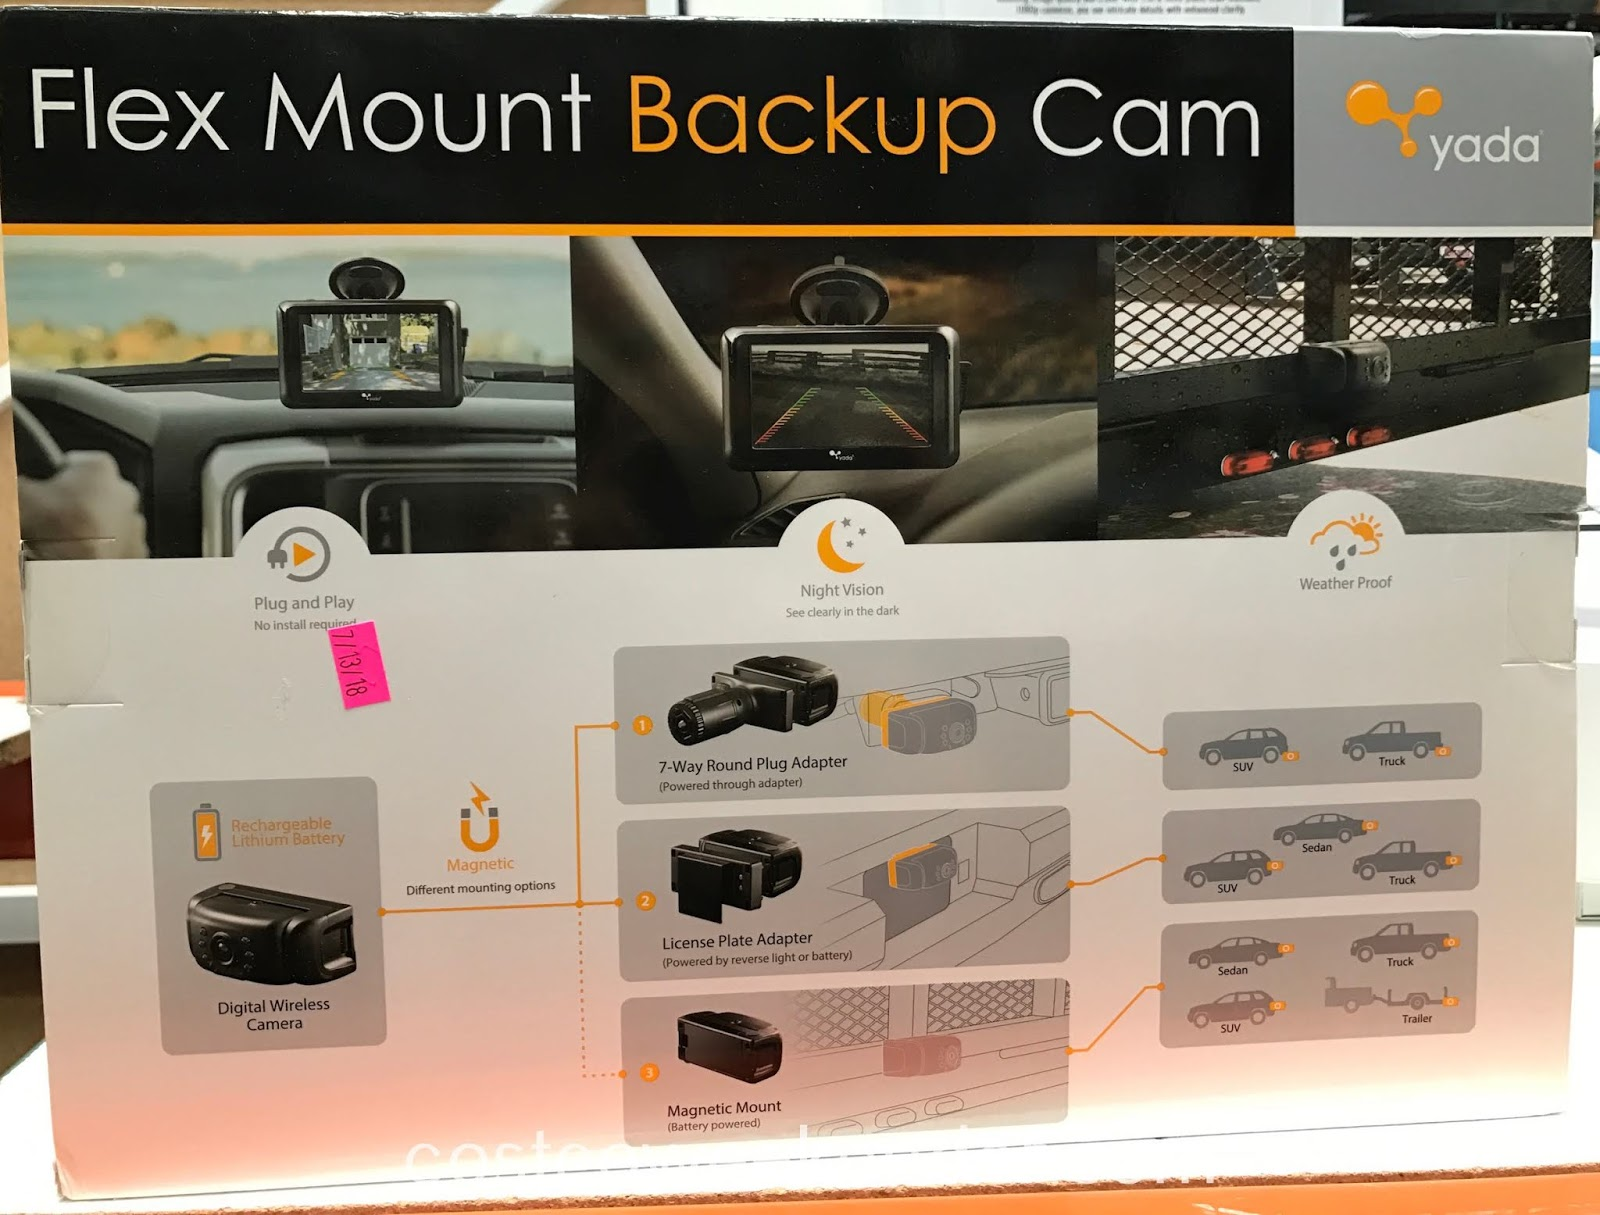 Costco 1084071 - Yada Flex Mount Backup Camera helps you when you have difficulty parallel parking